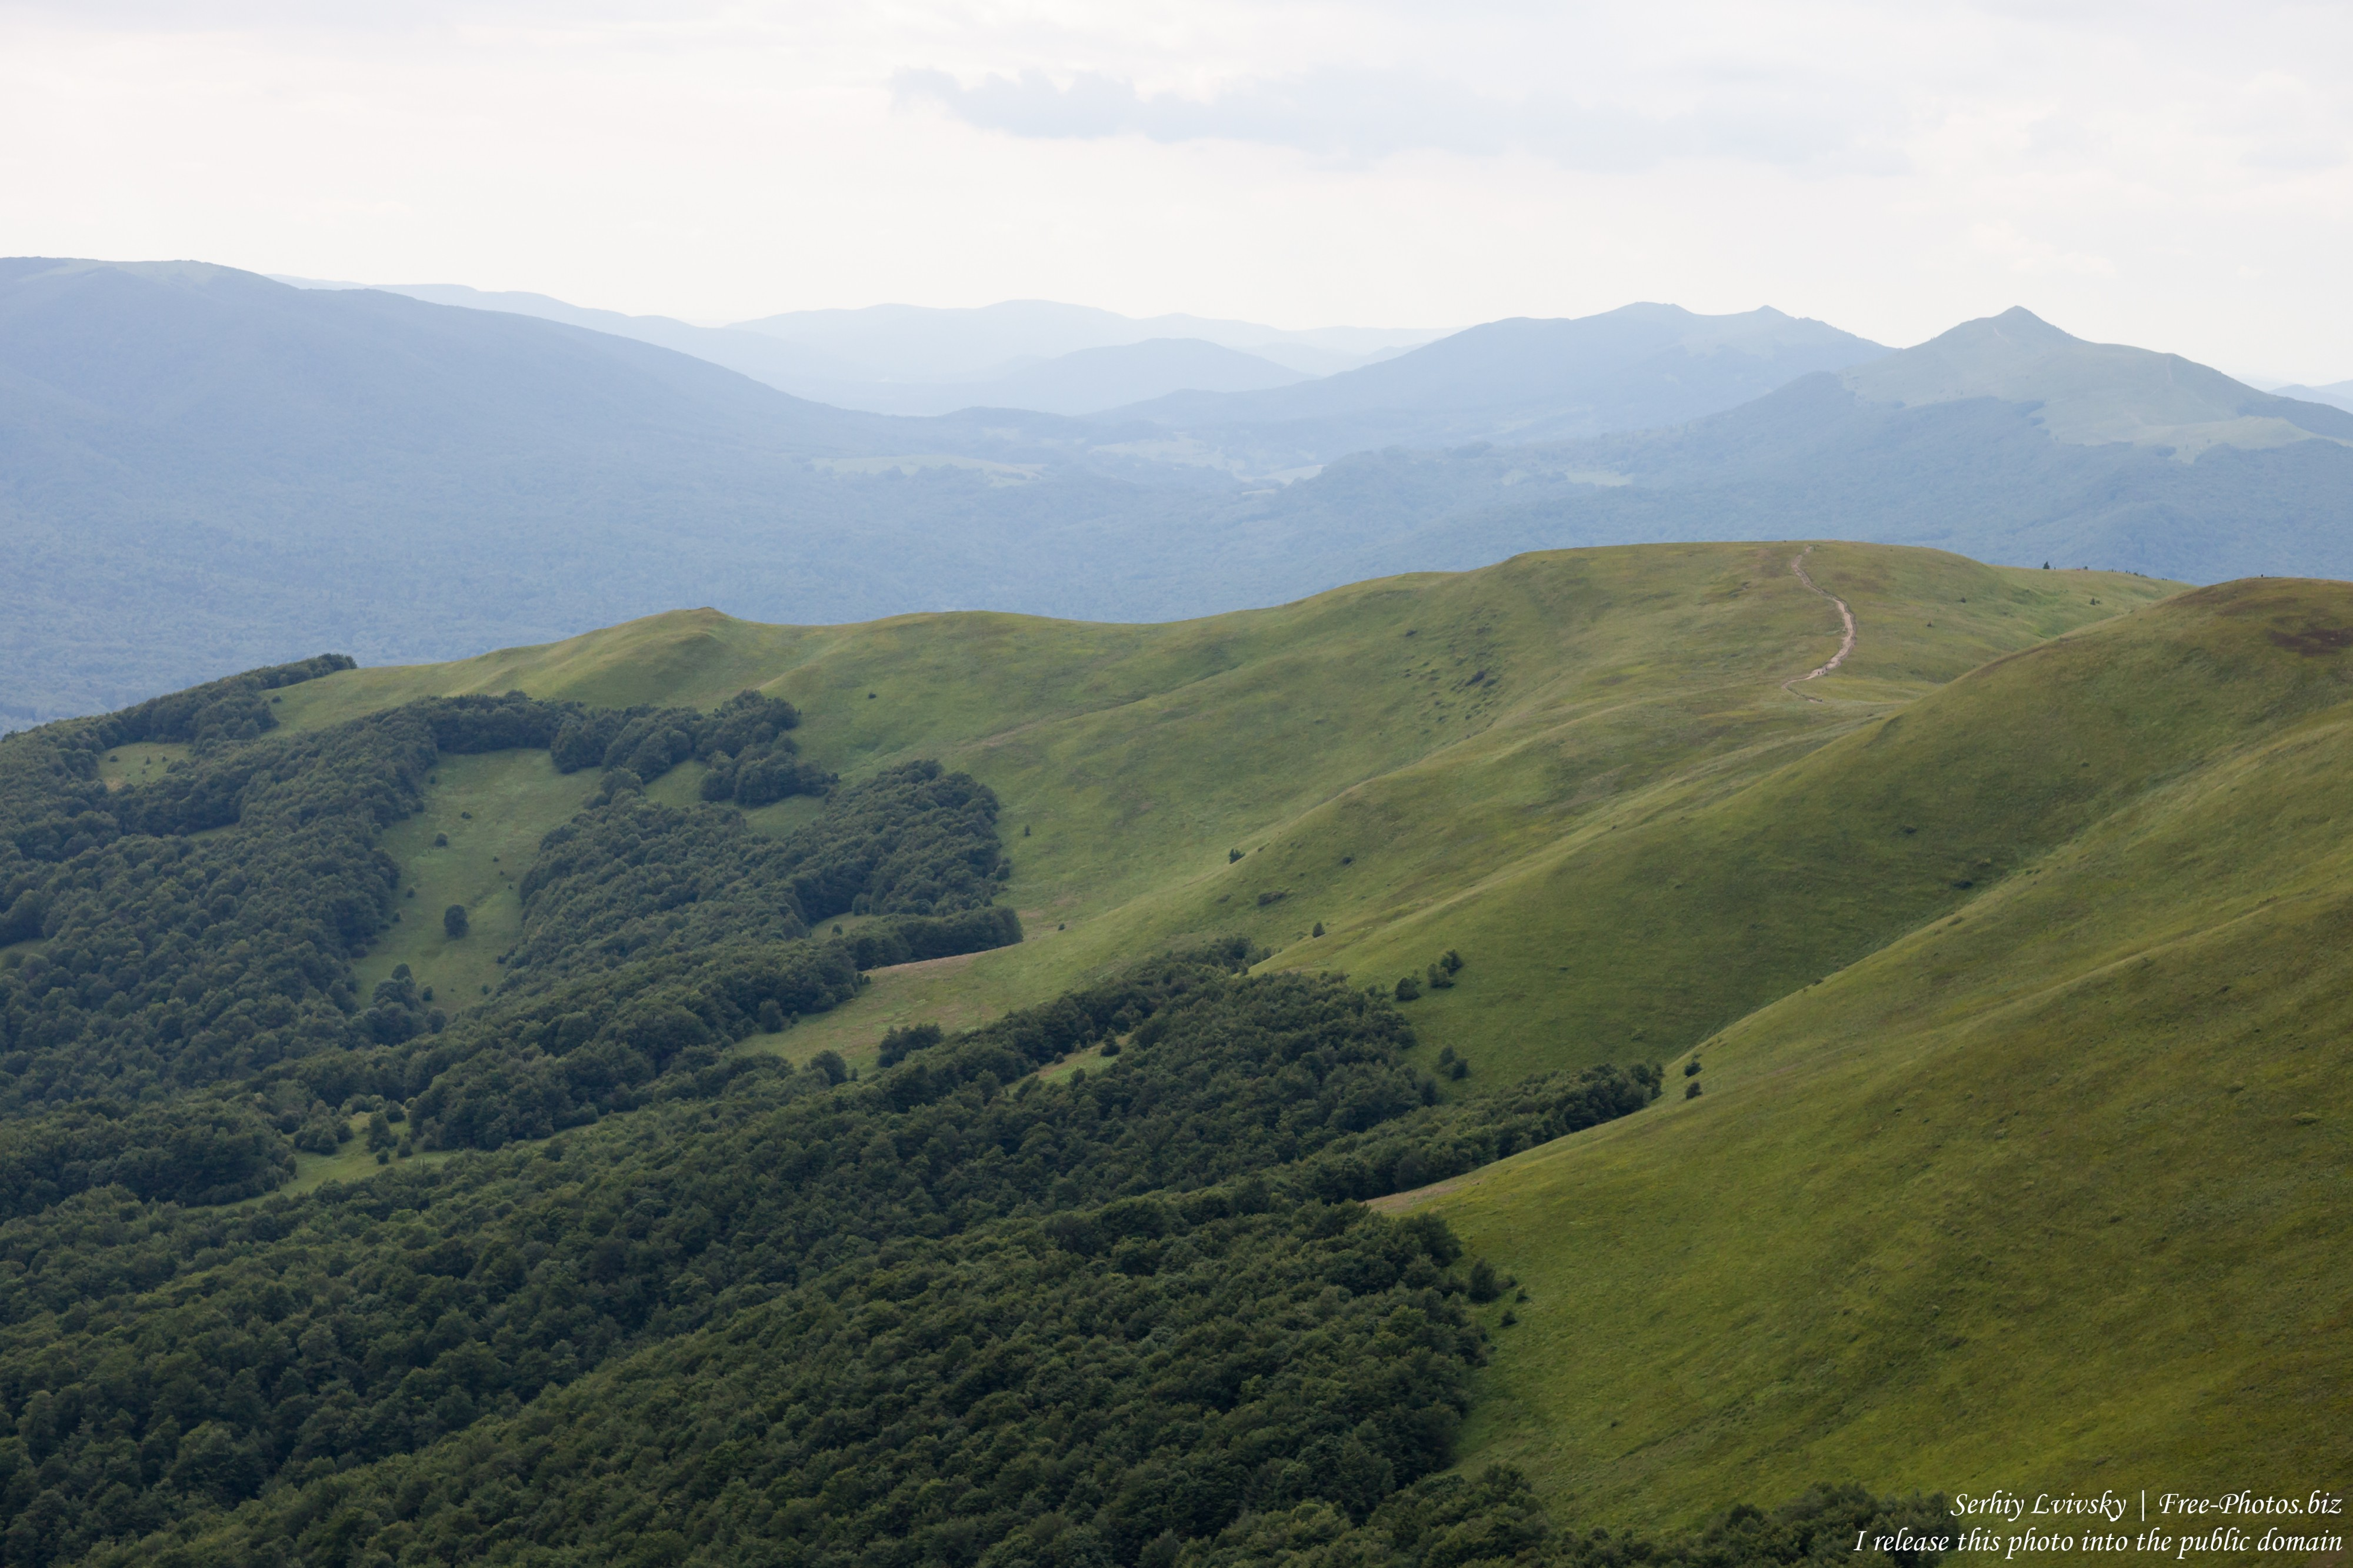 Bieszczady mountains, Poland, photographed in July 2017 by Serhiy Lvivsky, picture 3